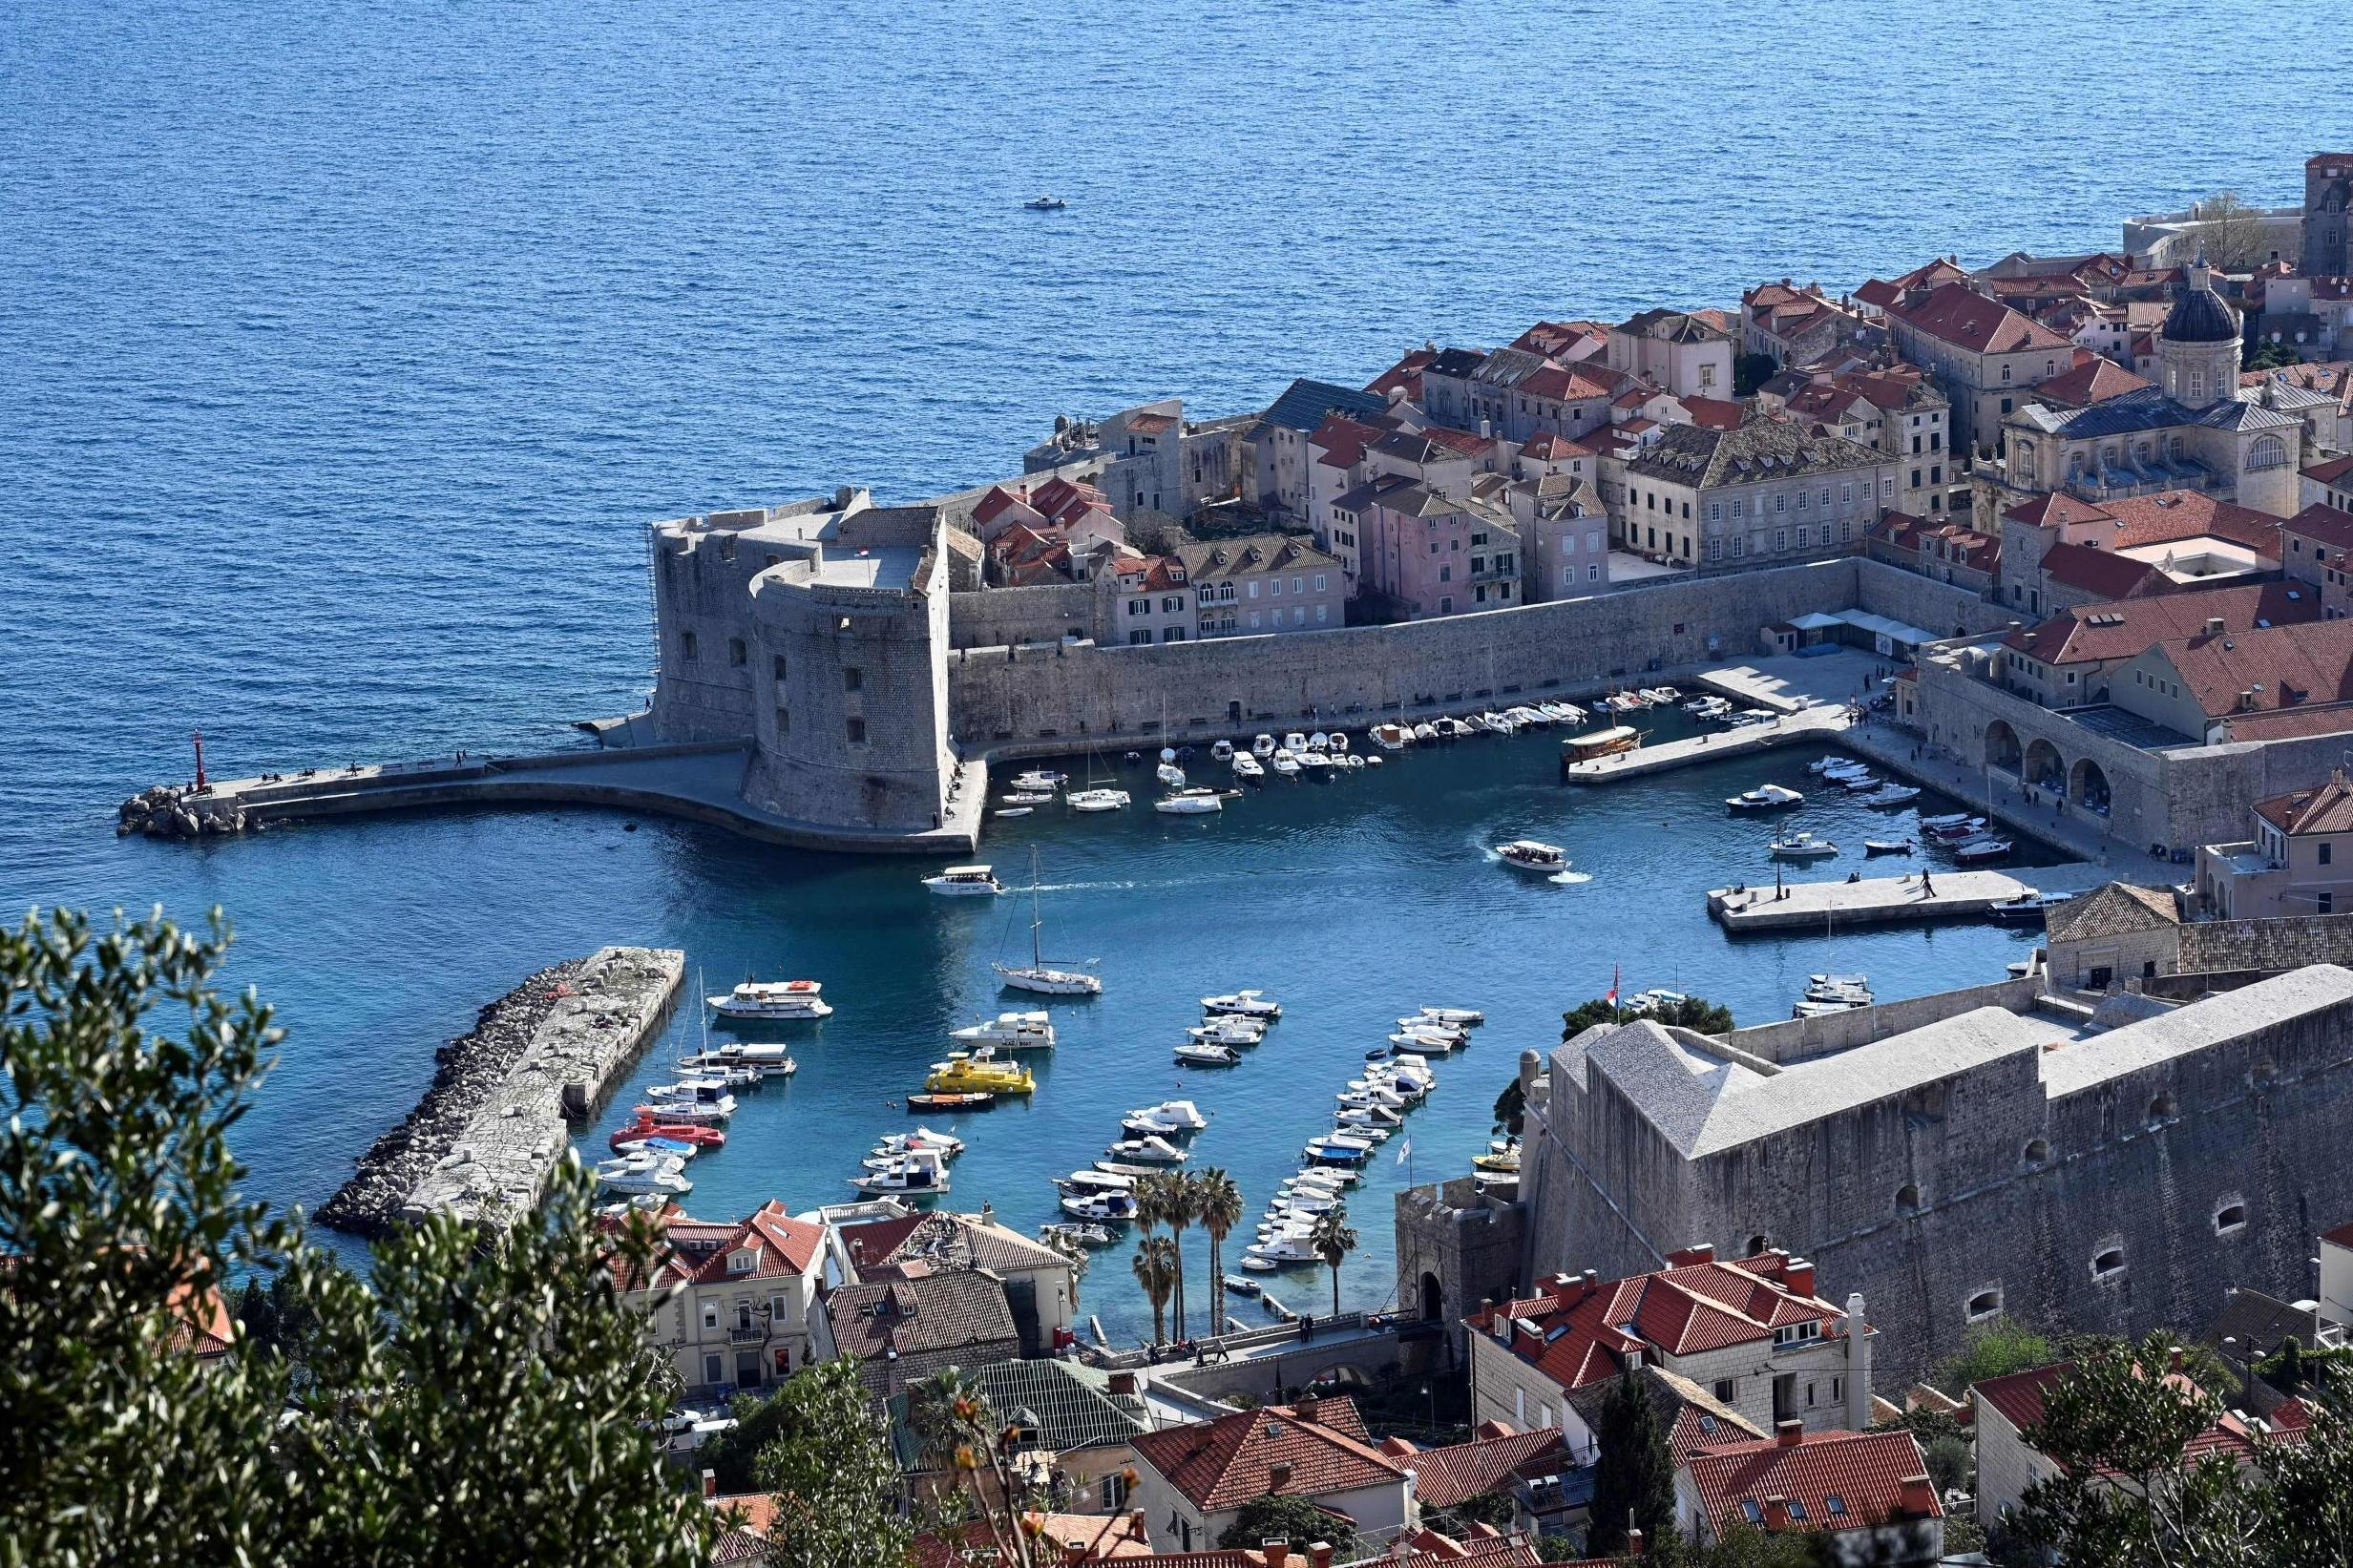 Game of Thrones: Competition offering free trip to Croatia if you can guess the season 8 ending